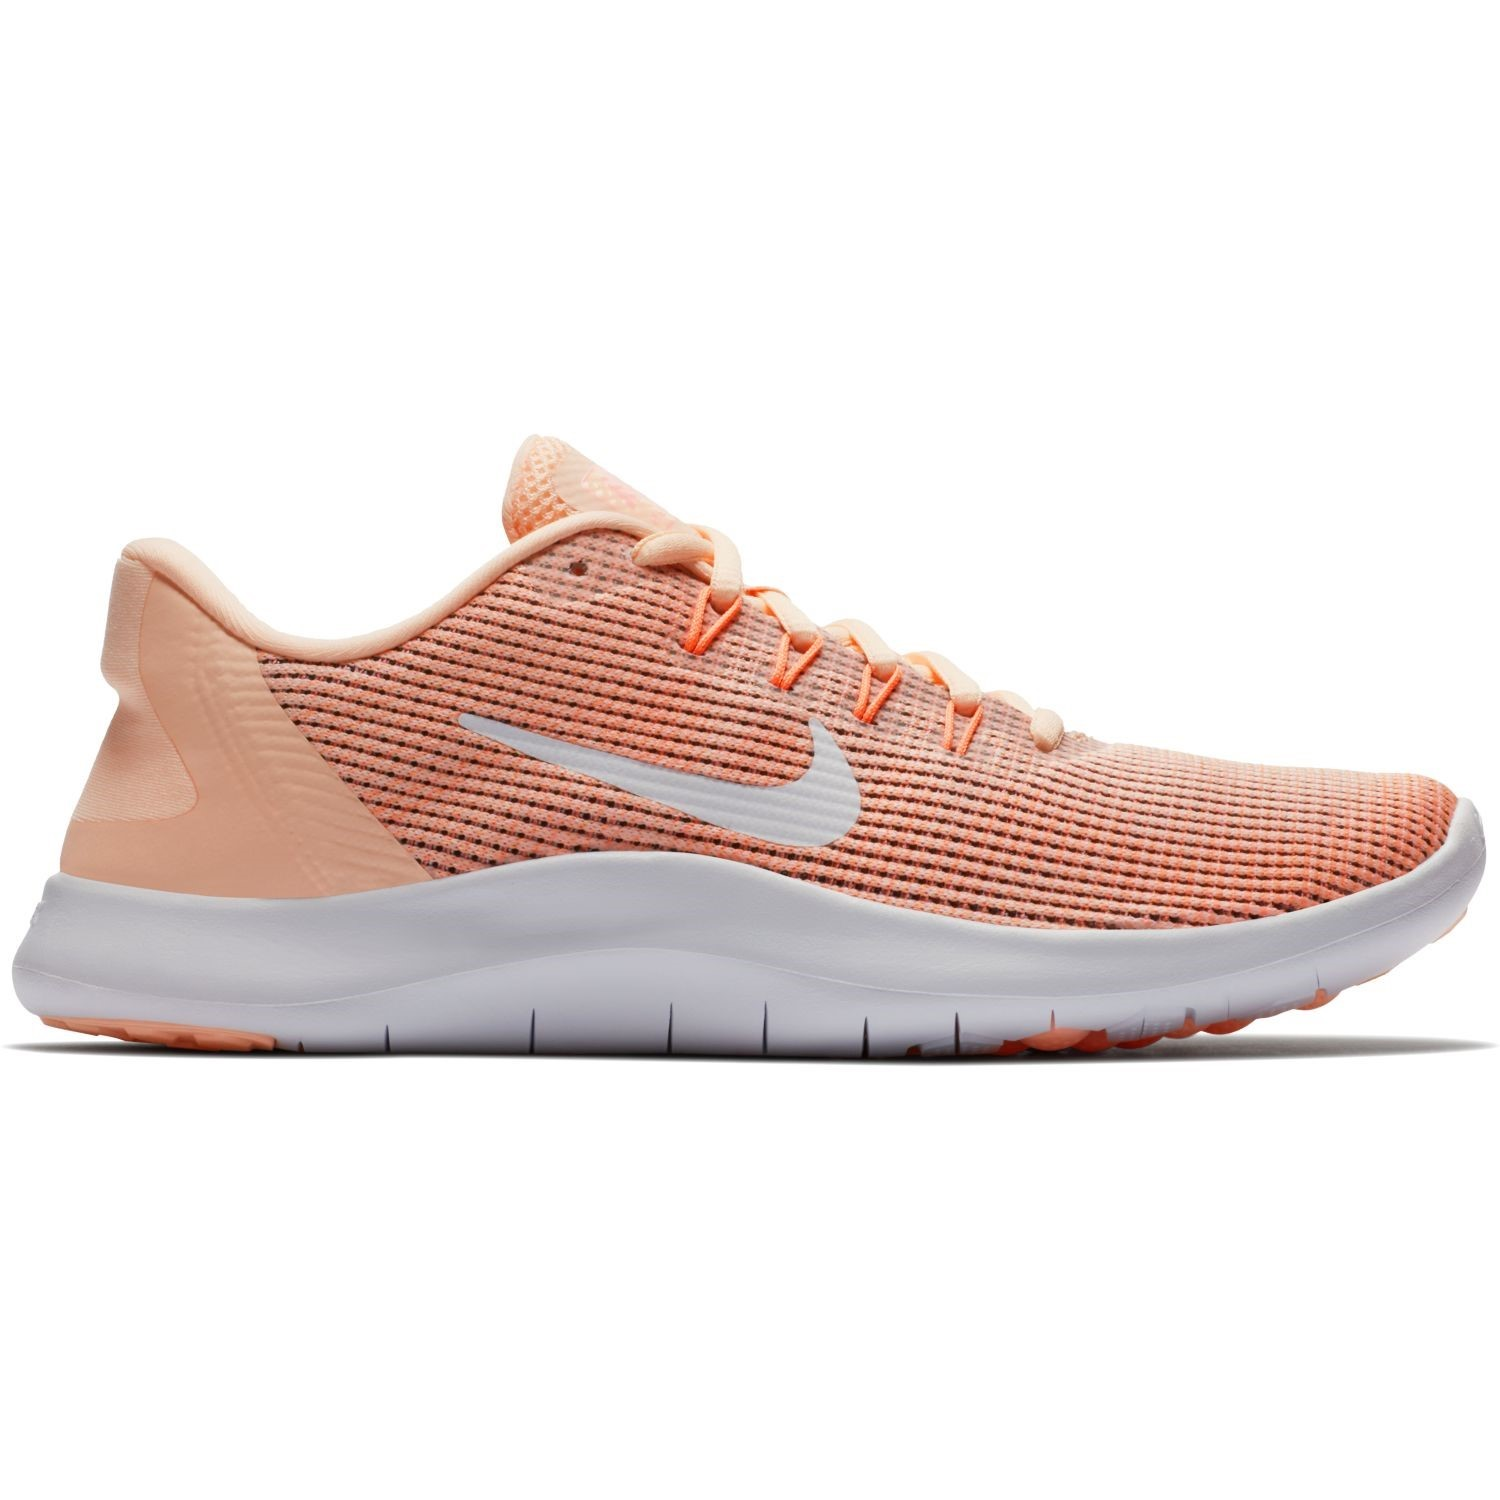 819e25dc63dd Nike Flex RN 2018 - Womens Running Shoes - Crimson Tint White Pink Tint